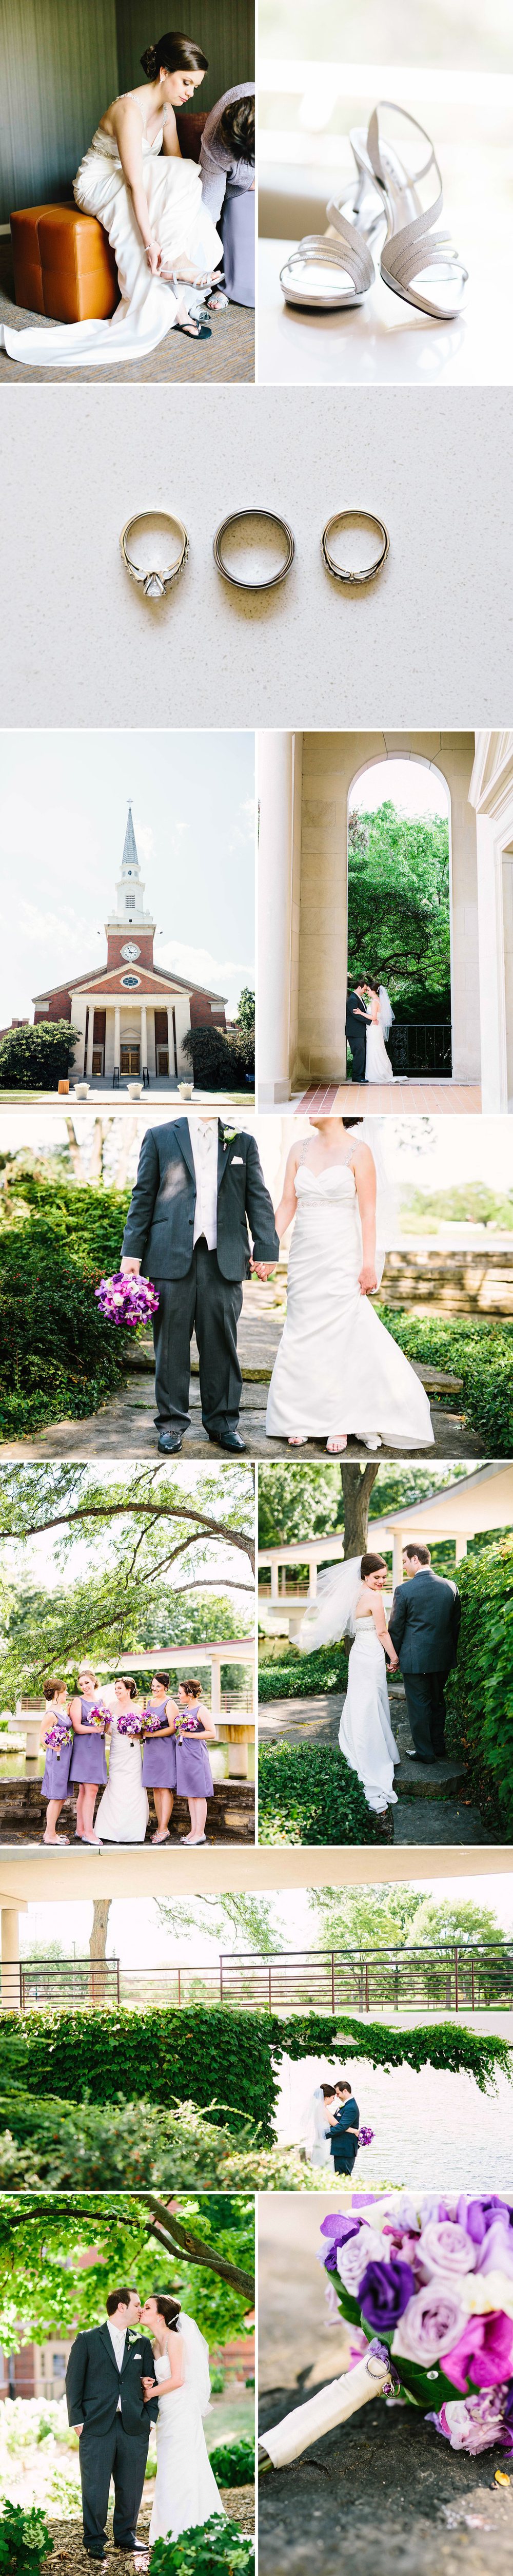 chicago-fine-art-wedding-photography-ranieri